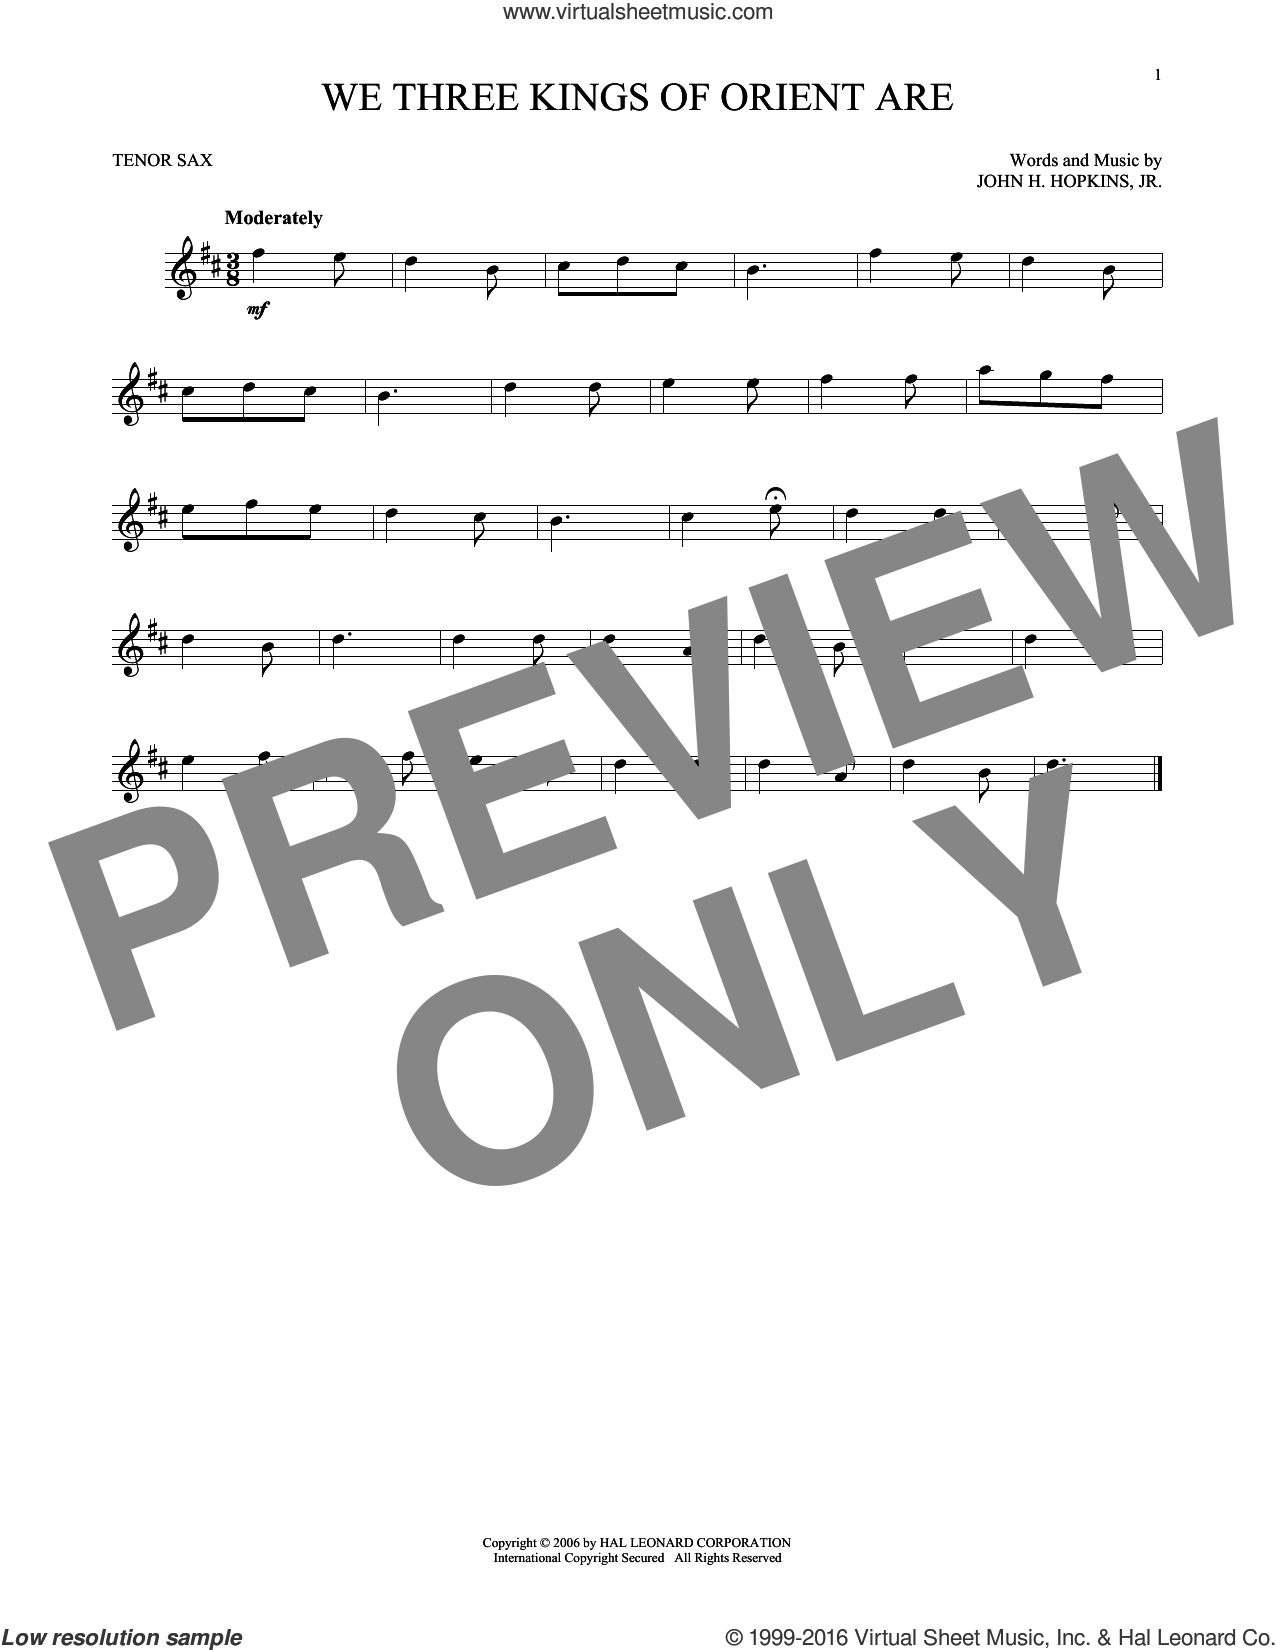 We Three Kings Of Orient Are sheet music for tenor saxophone solo by John H. Hopkins, Jr., intermediate skill level